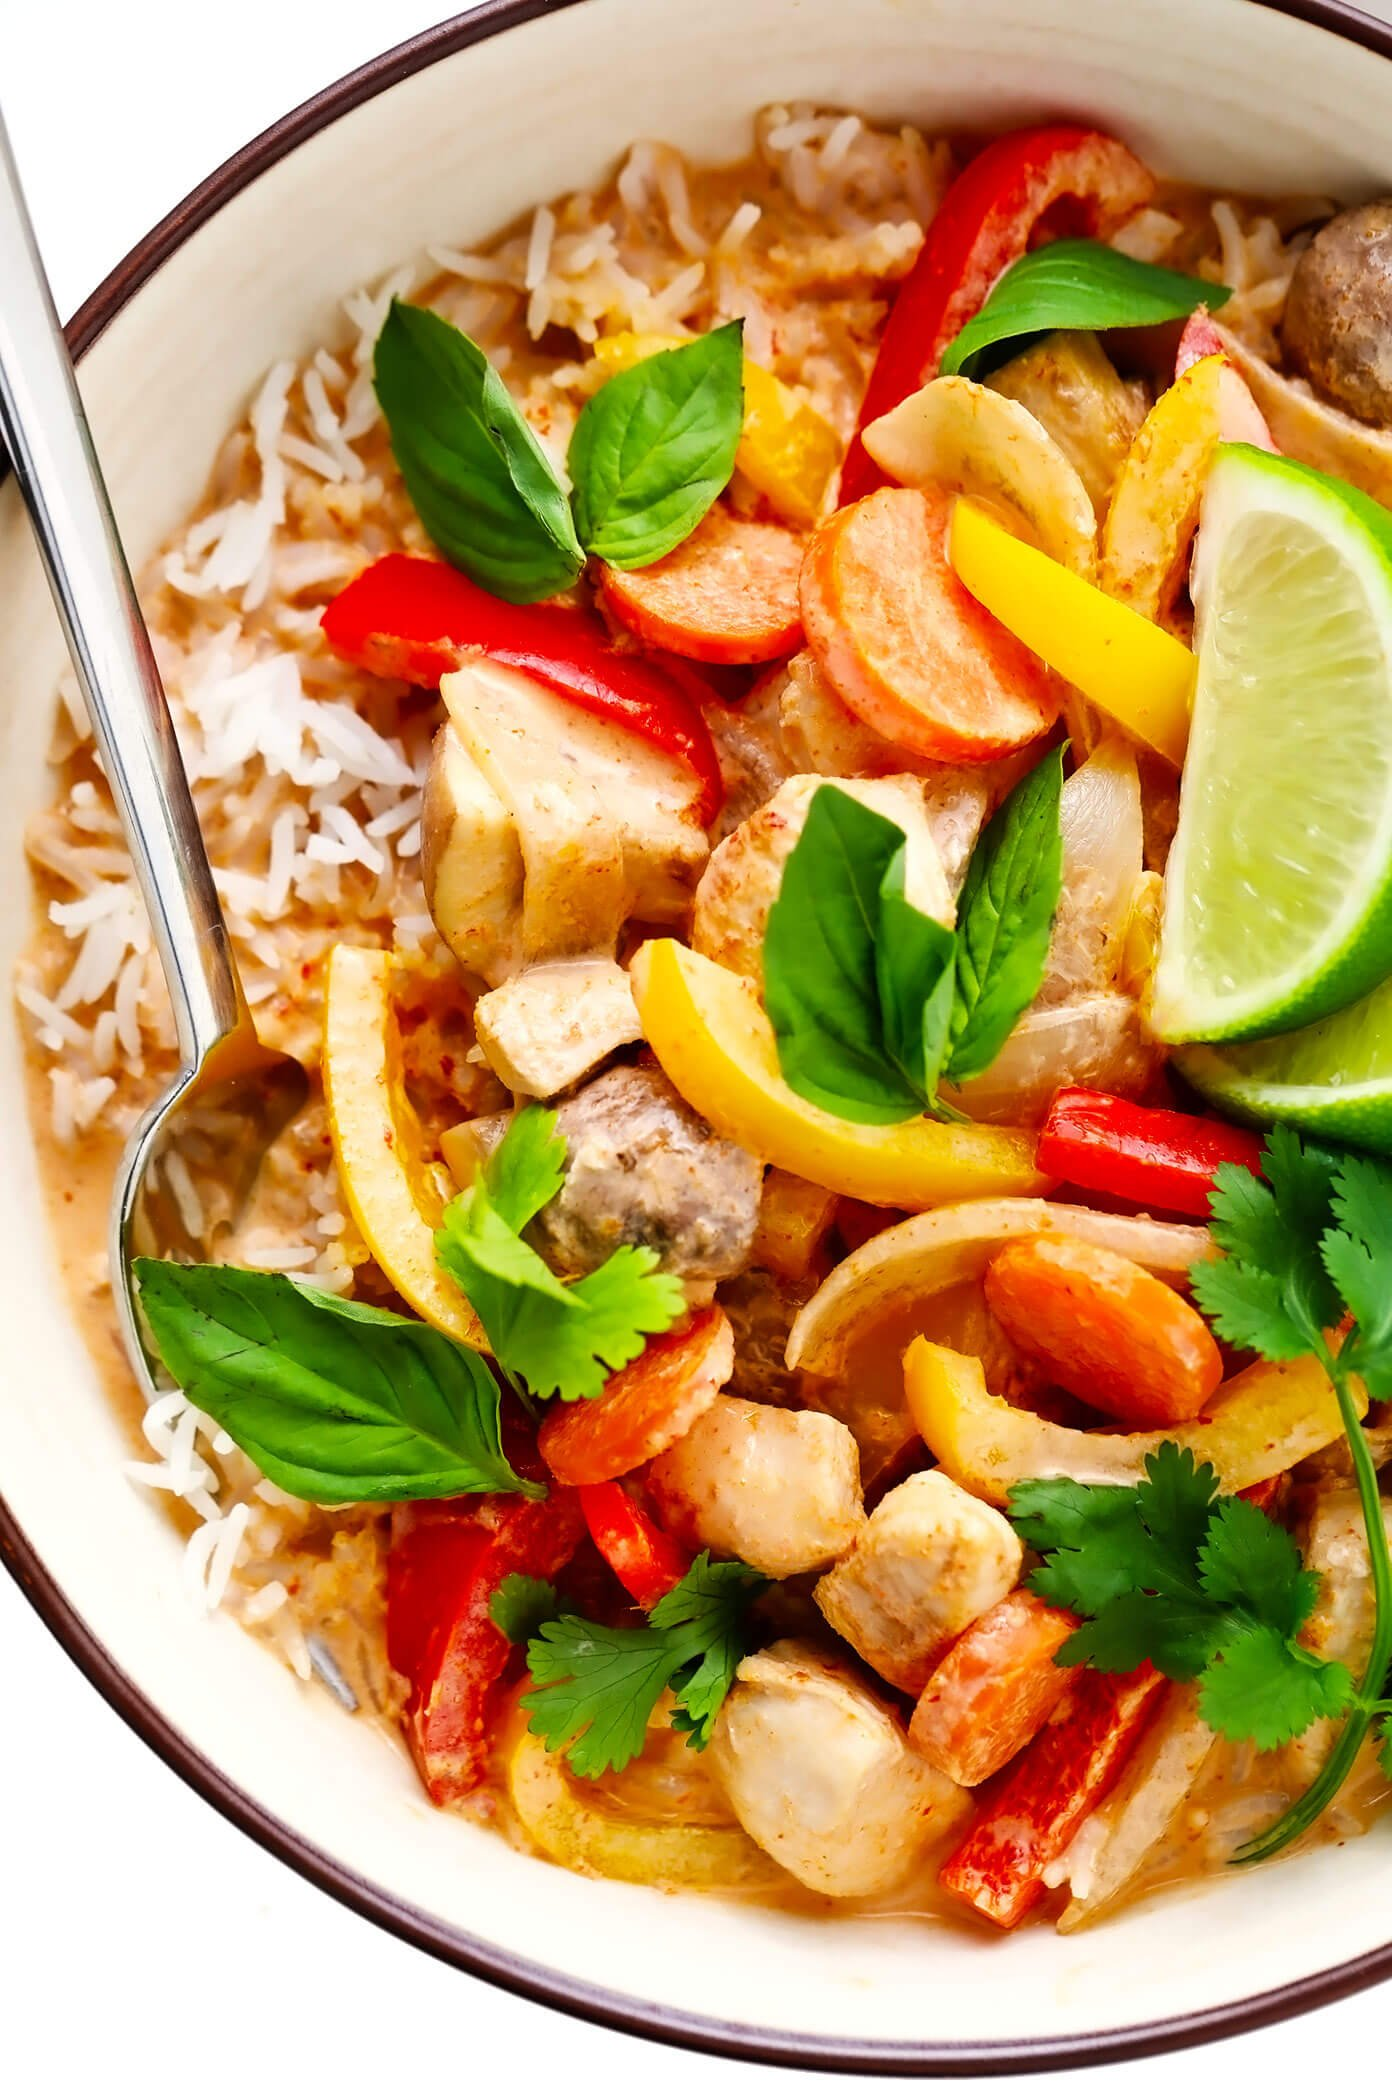 Thai Chicken Curry with Rice Closeup